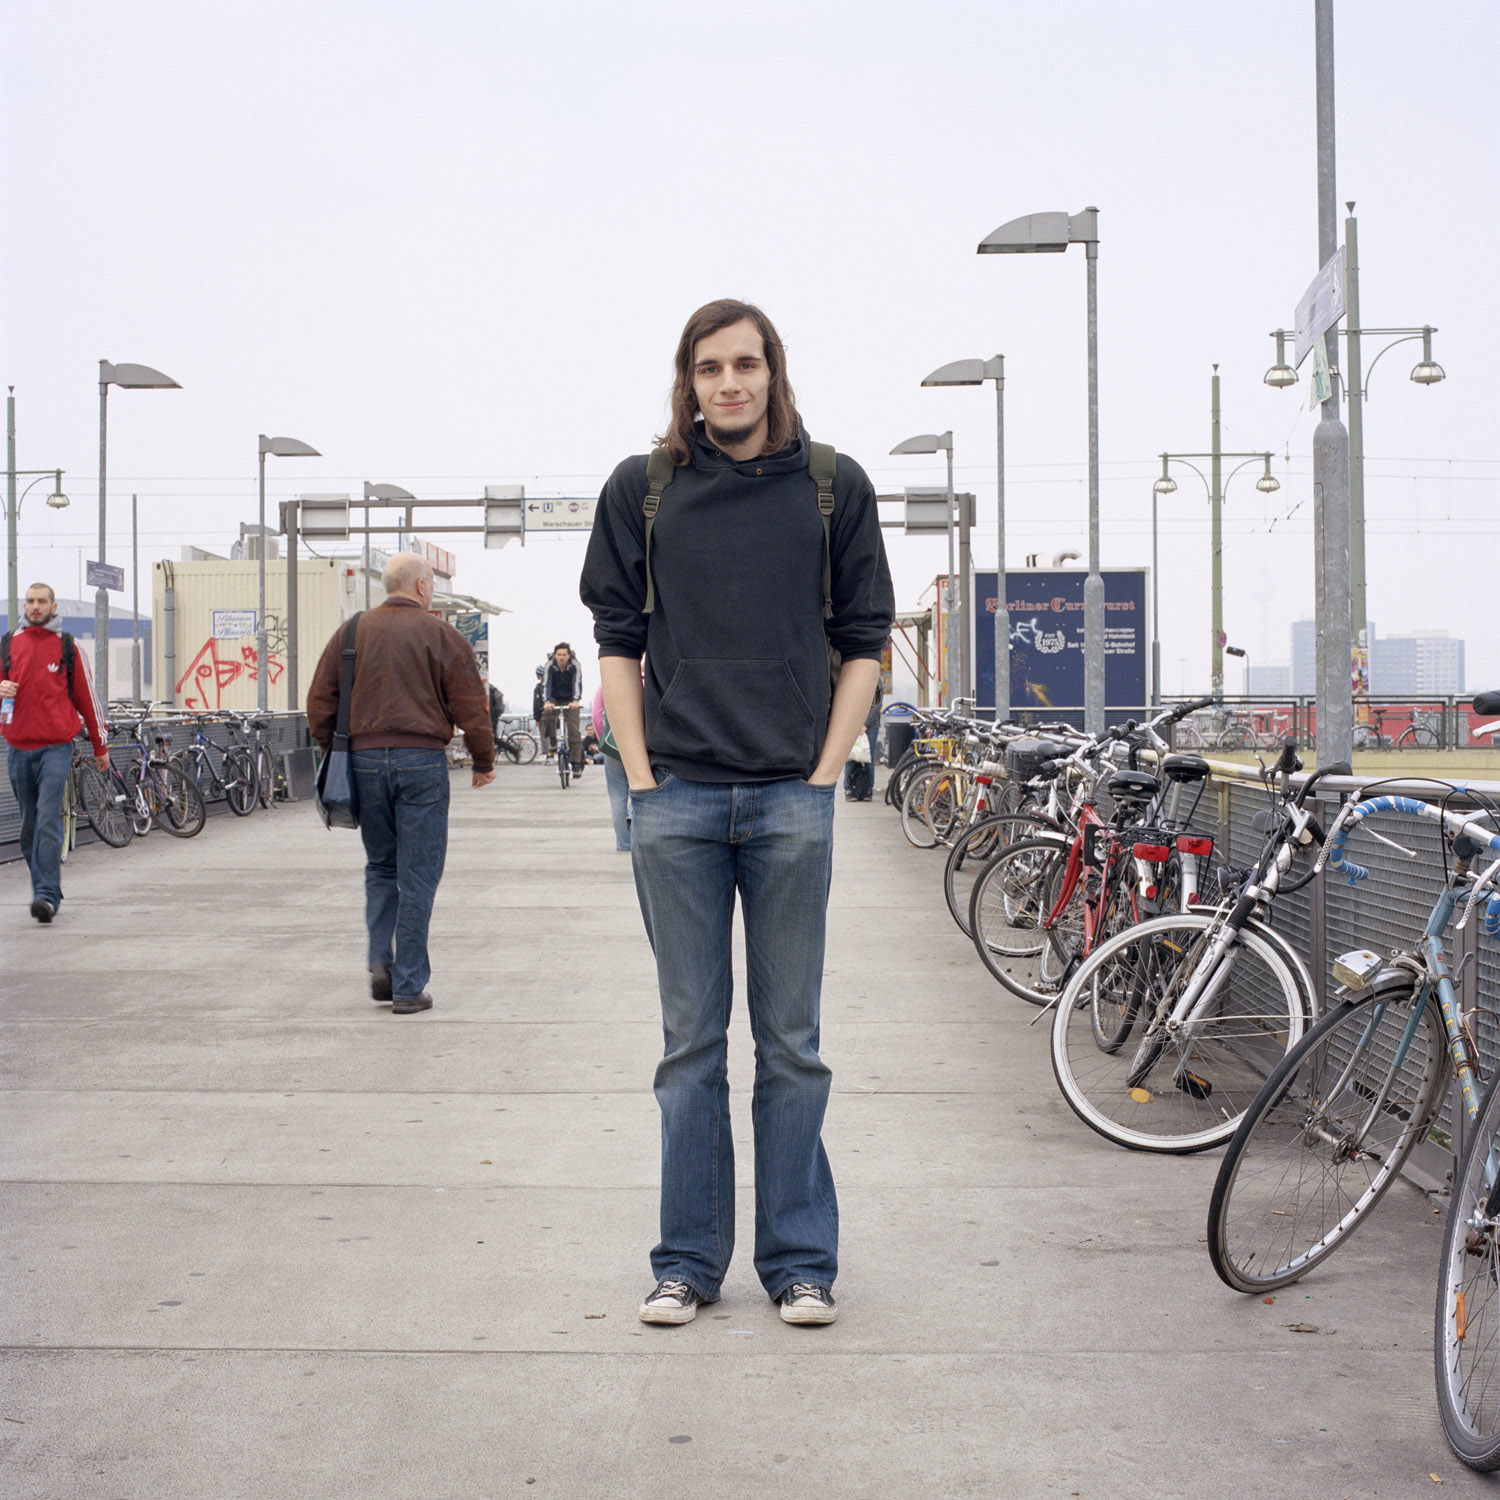 Patrick, 2008, from Berlin Project by Abby Storey